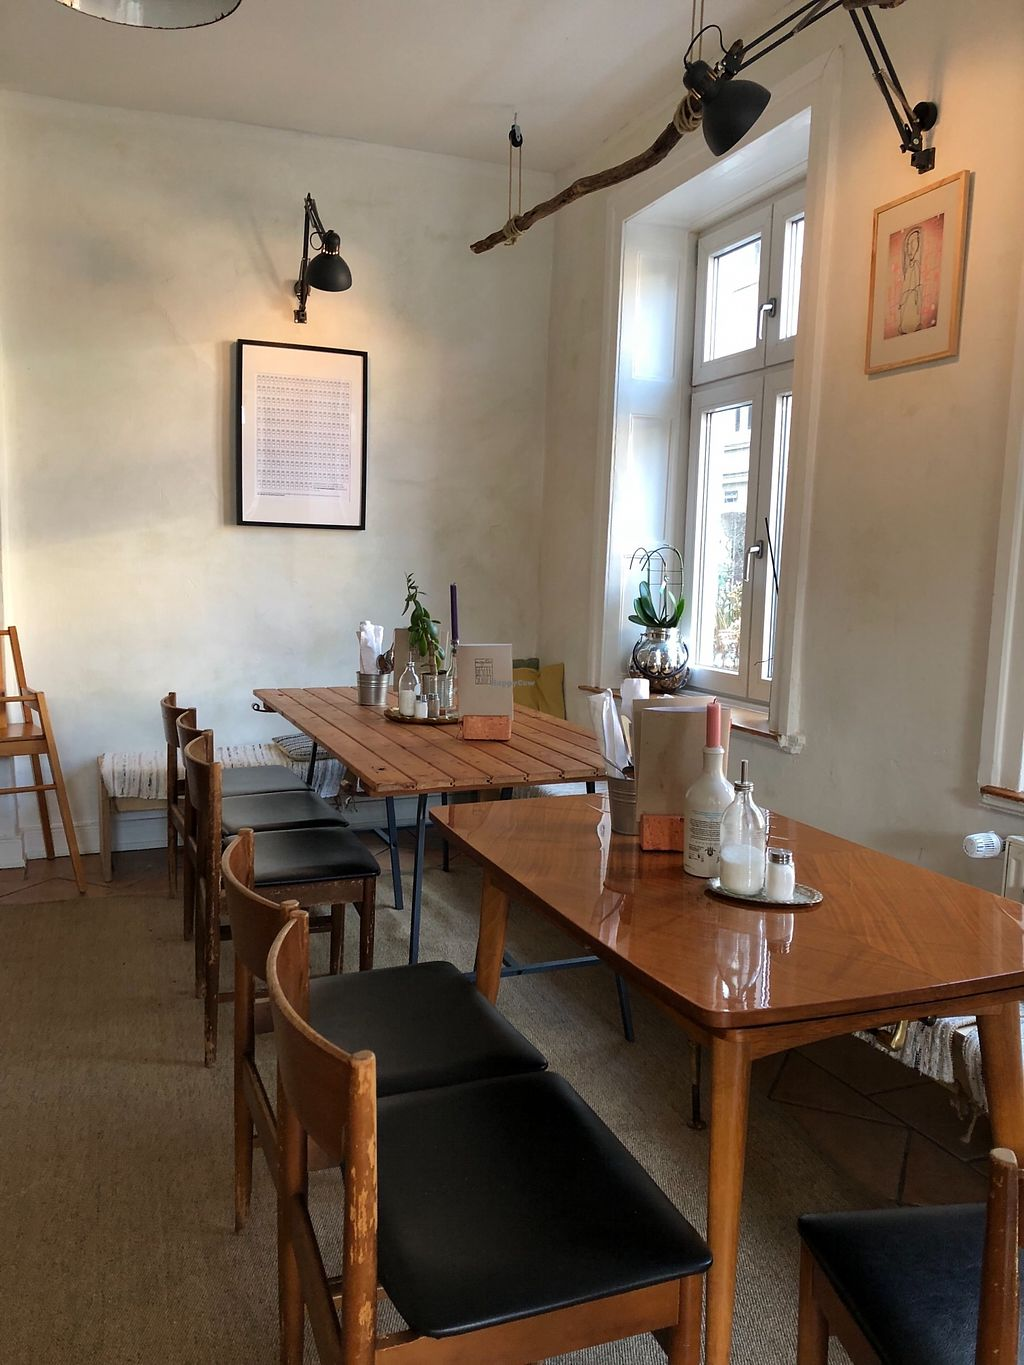 """Photo of In Guter Gesellschaft  by <a href=""""/members/profile/anninamaier"""">anninamaier</a> <br/>Seating area <br/> February 7, 2018  - <a href='/contact/abuse/image/111550/356190'>Report</a>"""